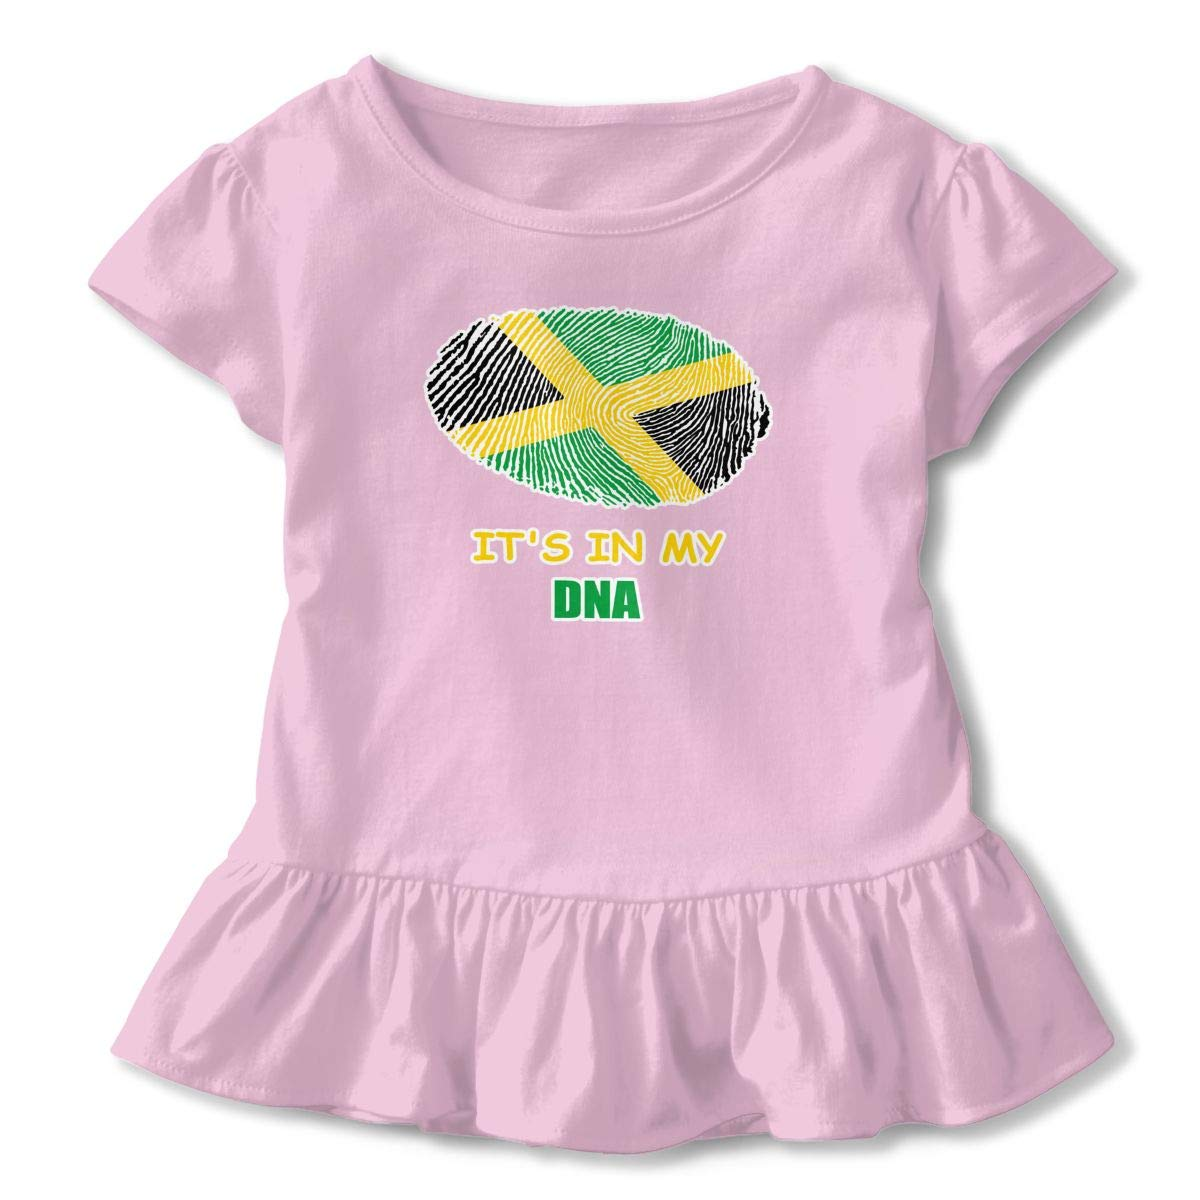 Jamaican Its in My DNA Toddler Baby Girl Ruffle Short Sleeve T-Shirt Comfortable Cotton T Shirts